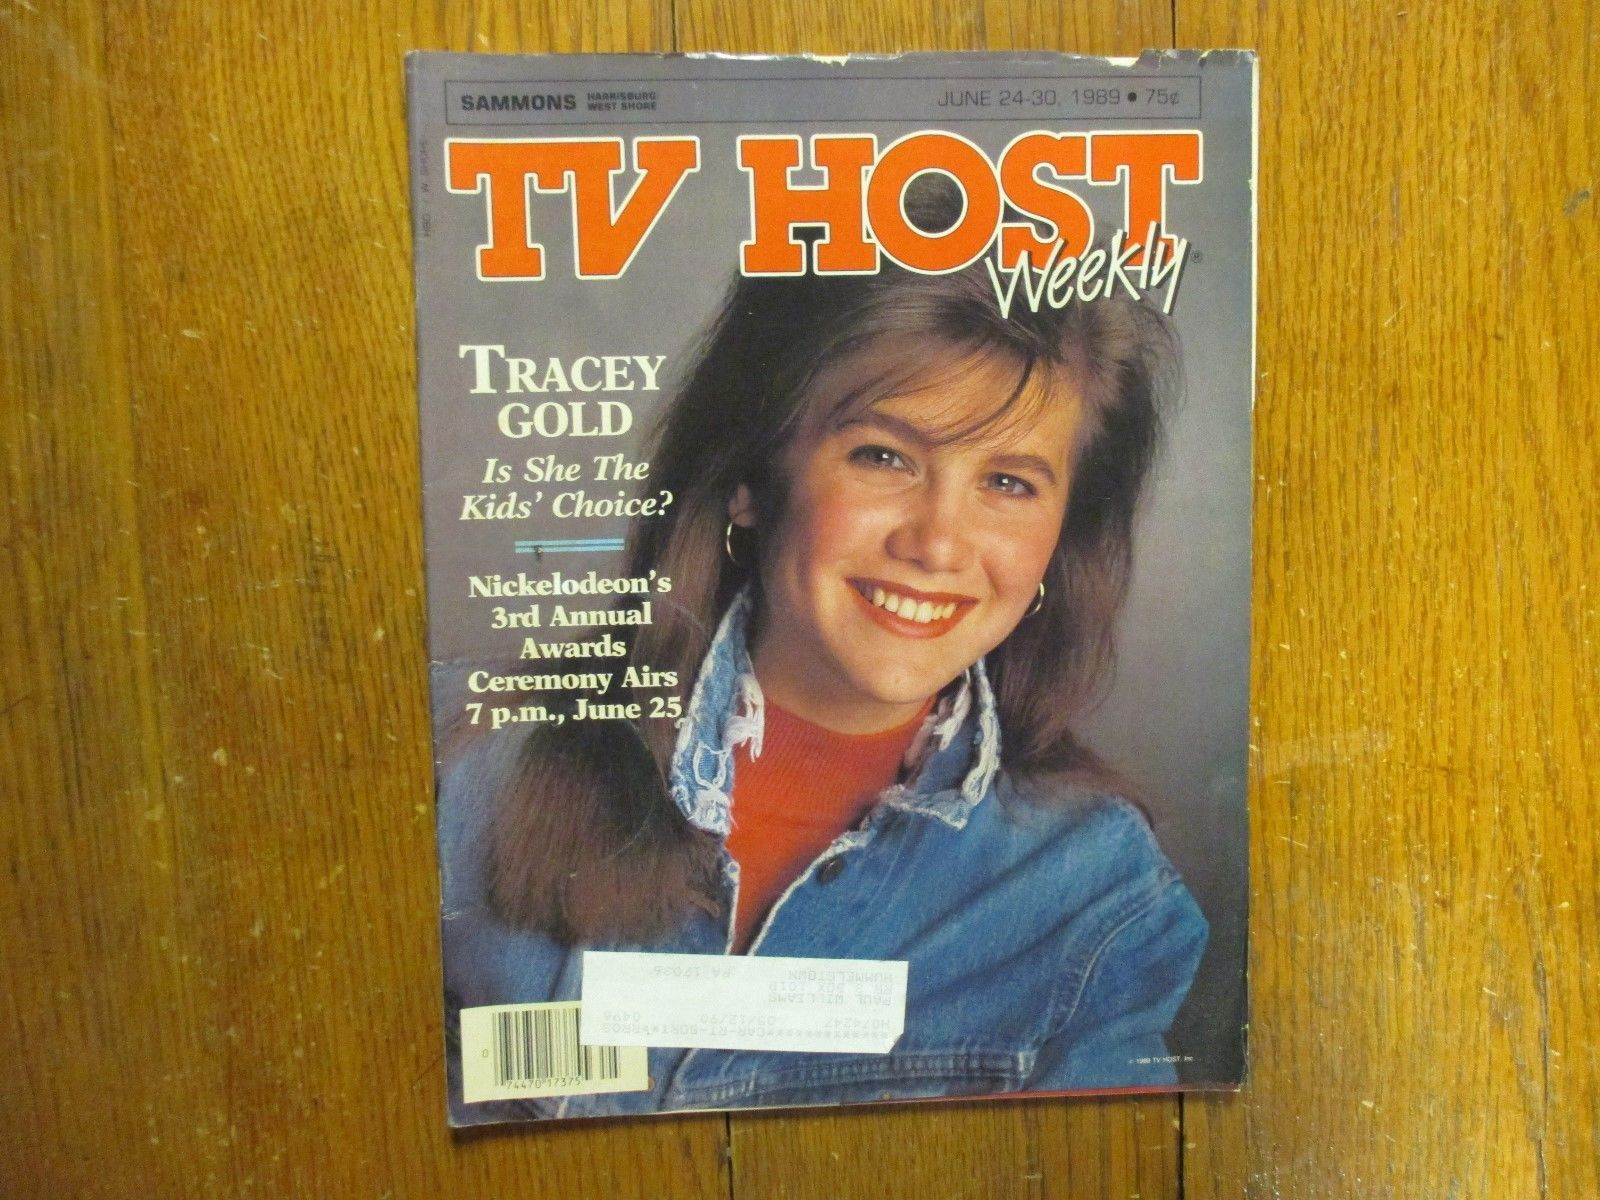 June_24_1989_Pa_TV_Host_Magazgrowing1